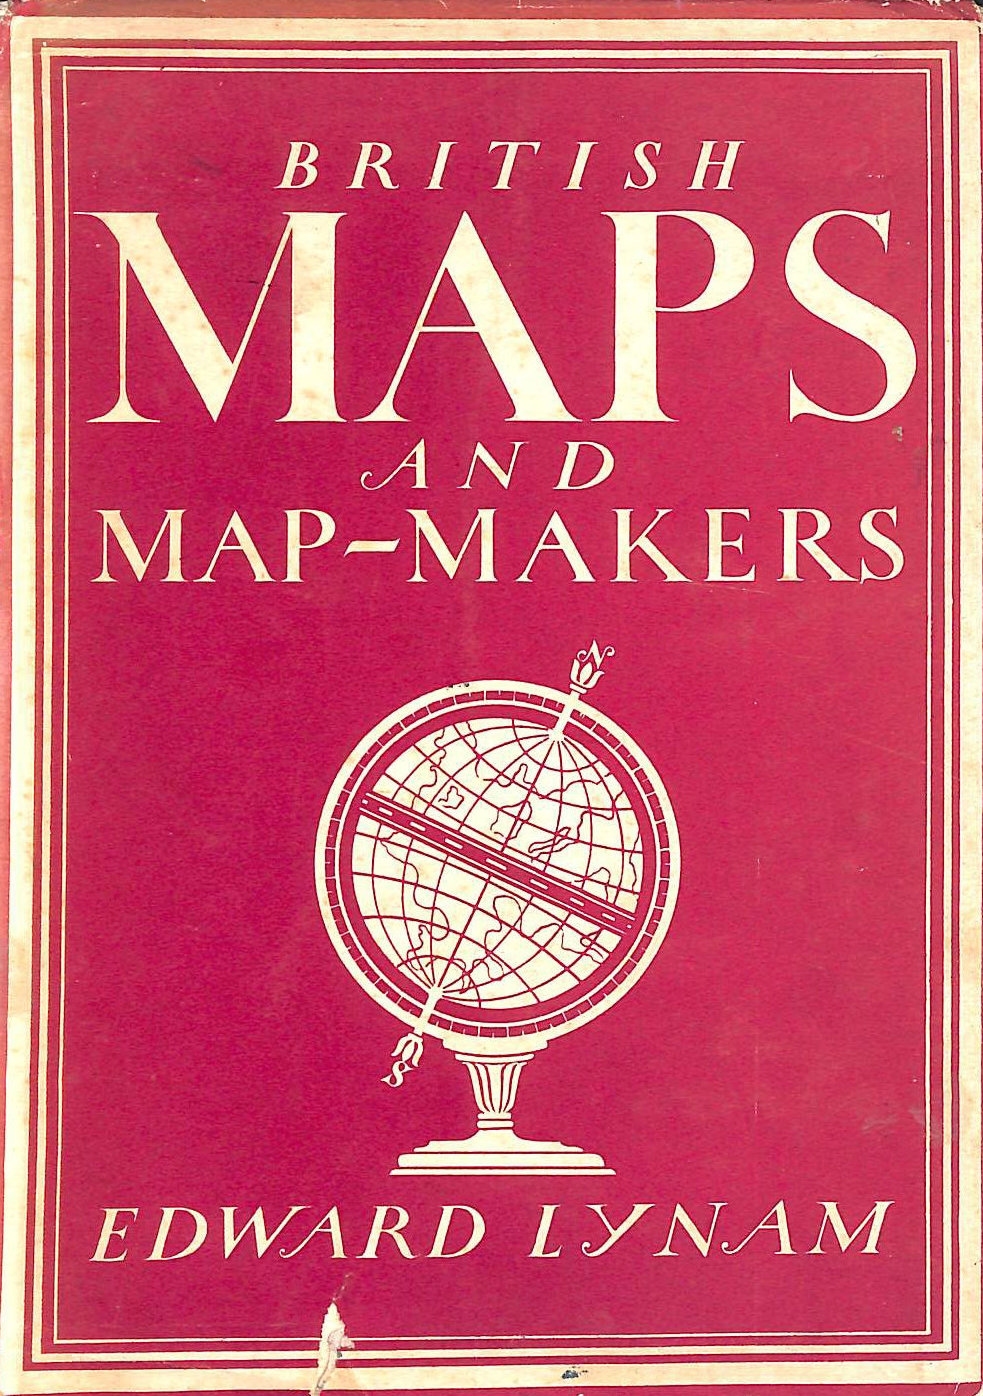 EDWARD LYNAM - British Maps and Map Makers : Britain in Pictures series